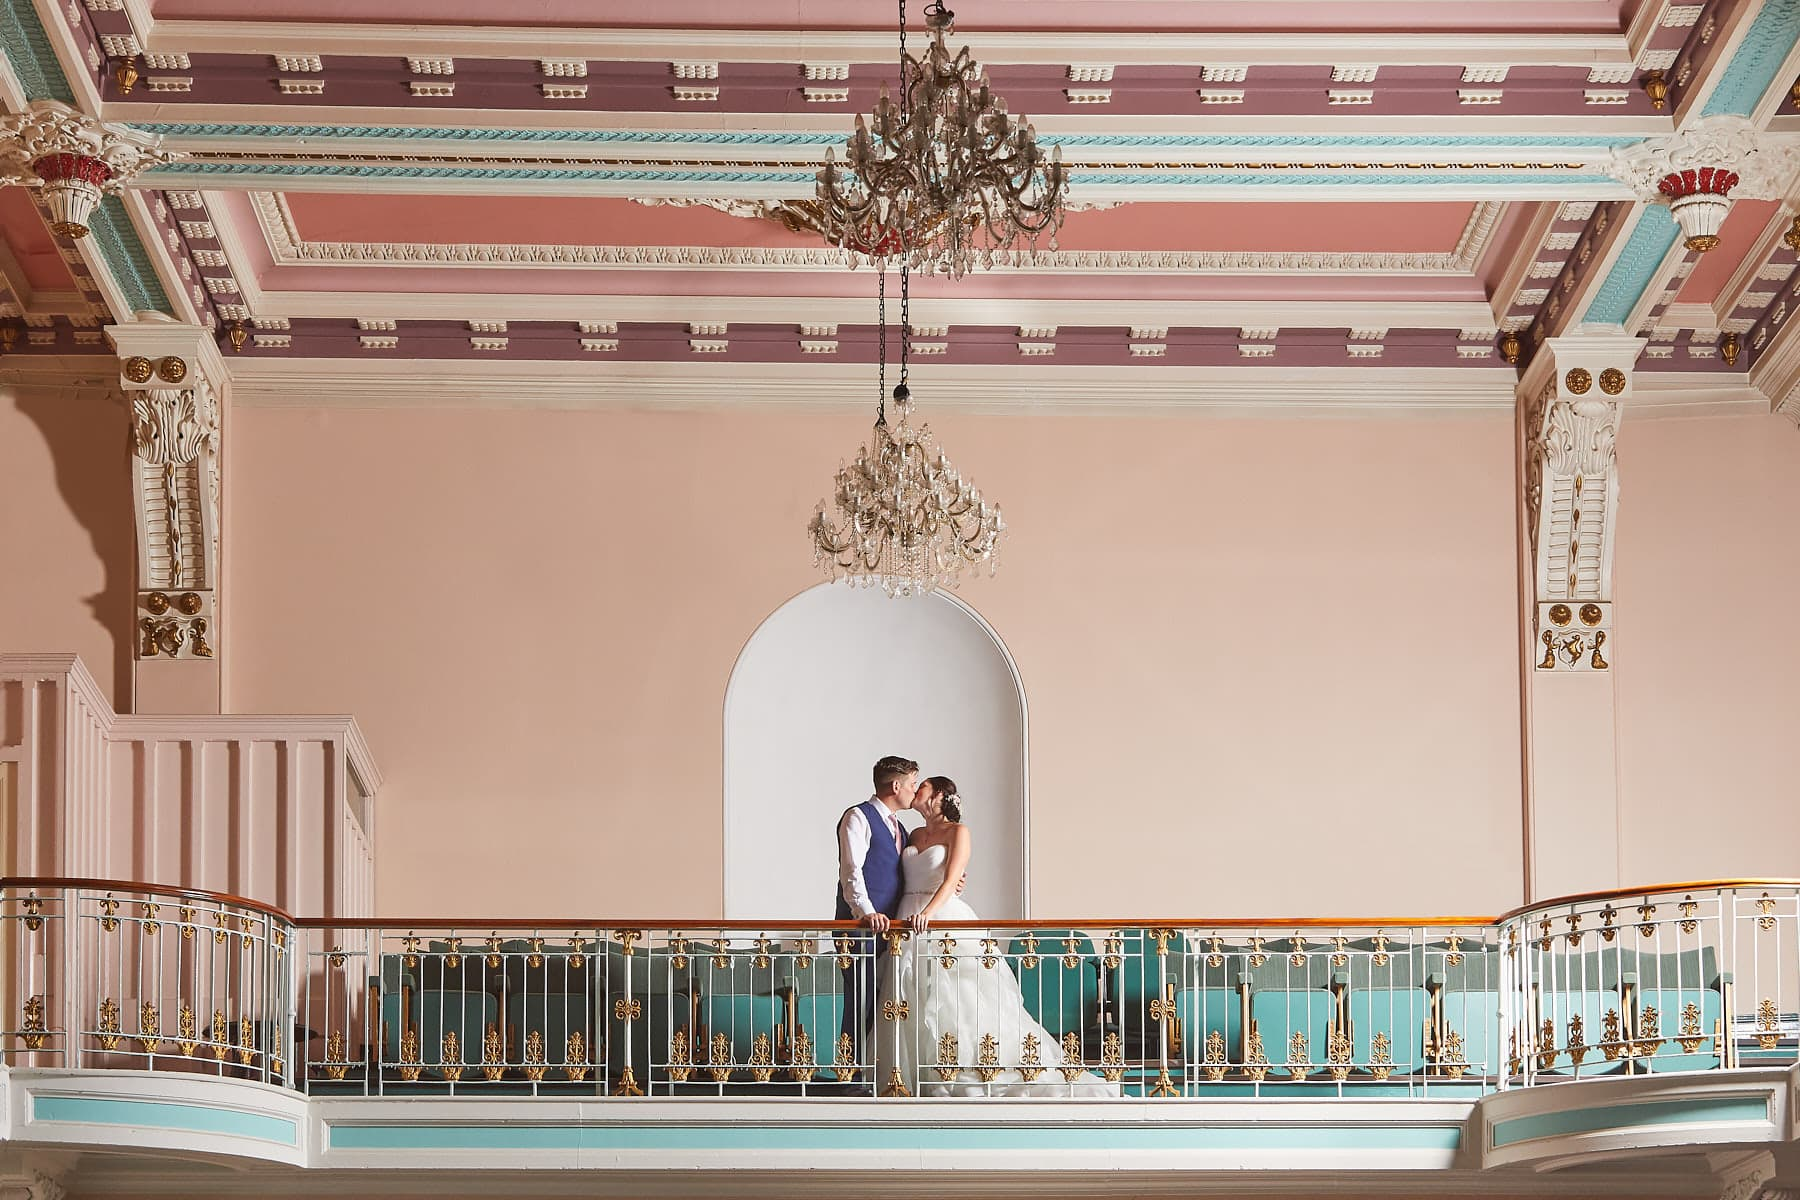 A couple spend time at Louth Town Hall balcony on their wedding day